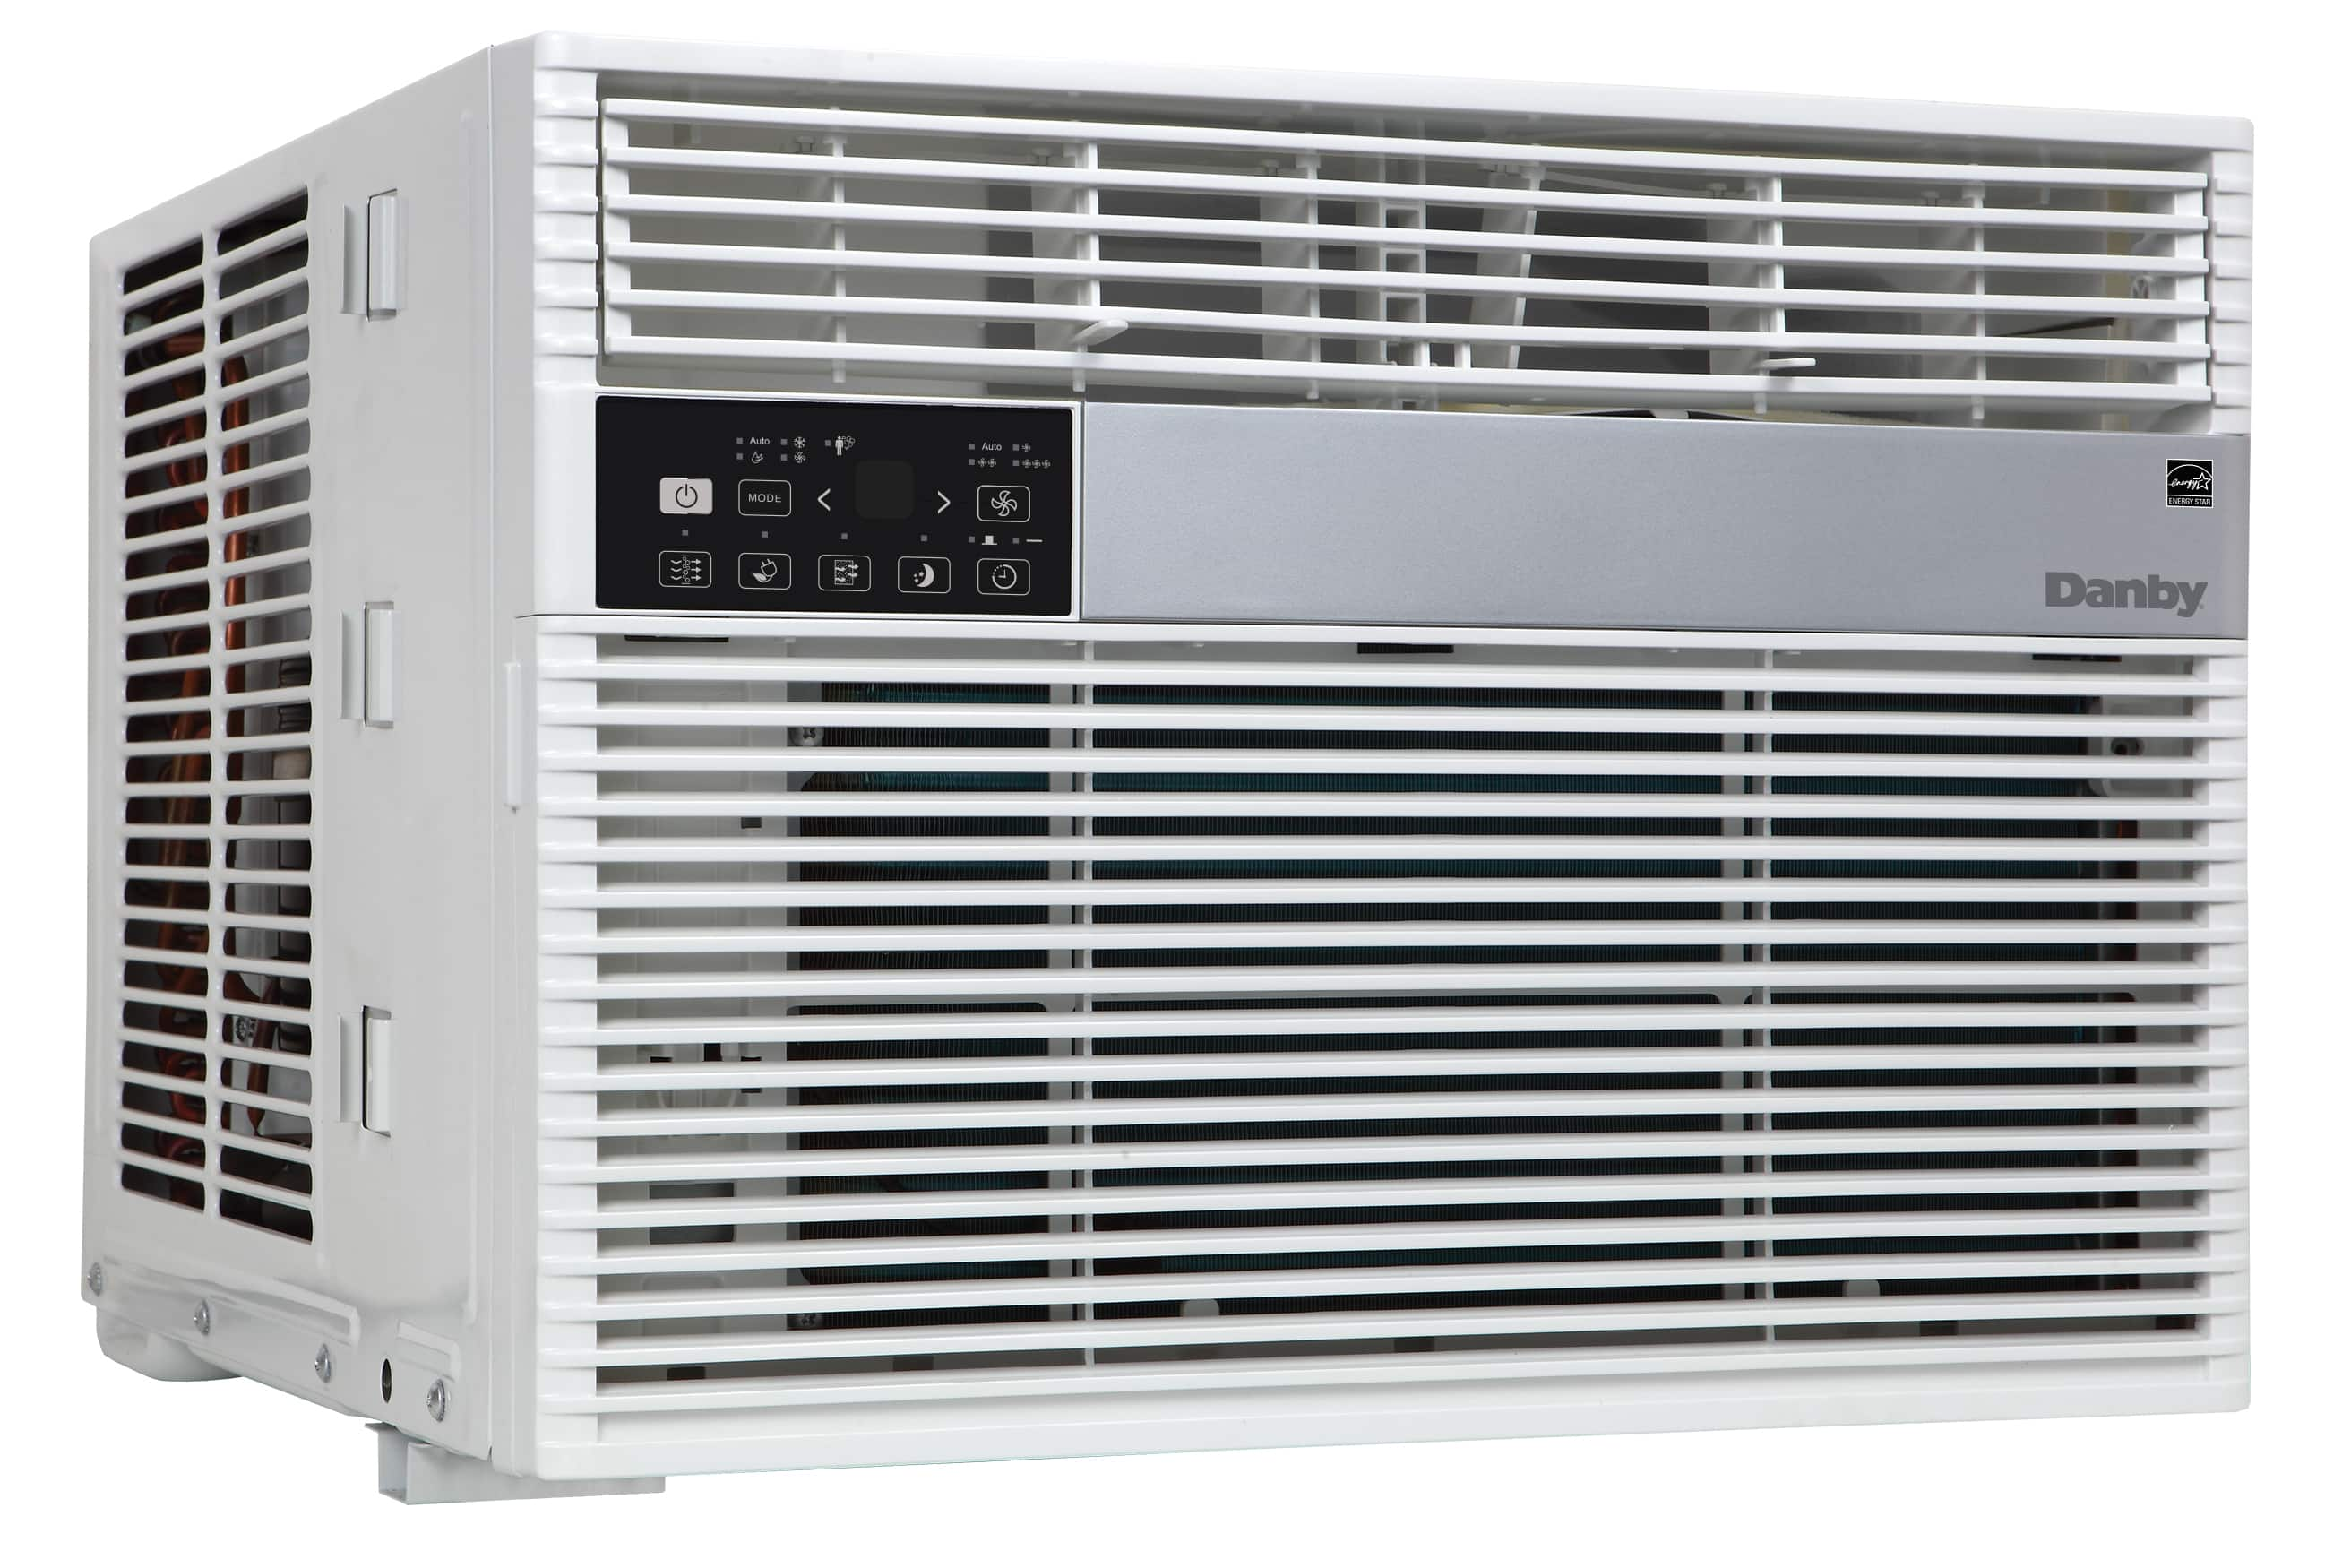 danby 8k btu 12 eer window air conditioner with remote